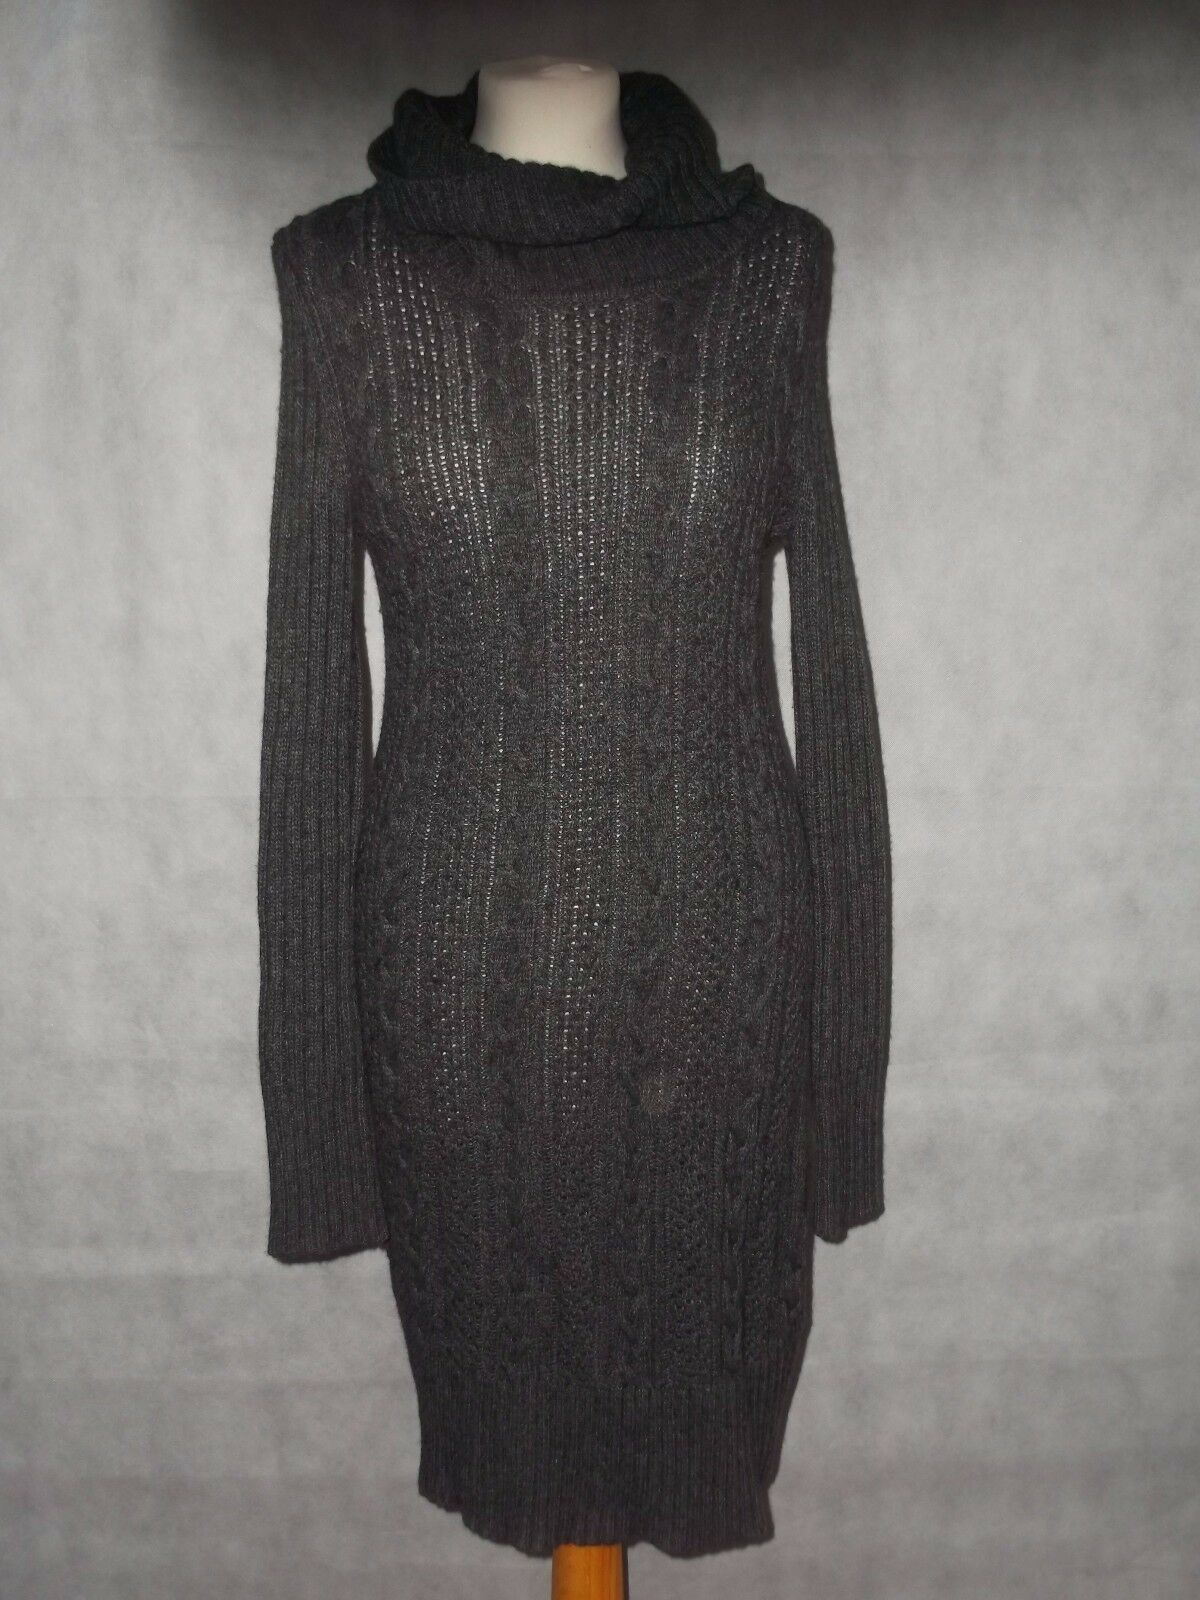 HOBBS cable knit jumper dress grey size s